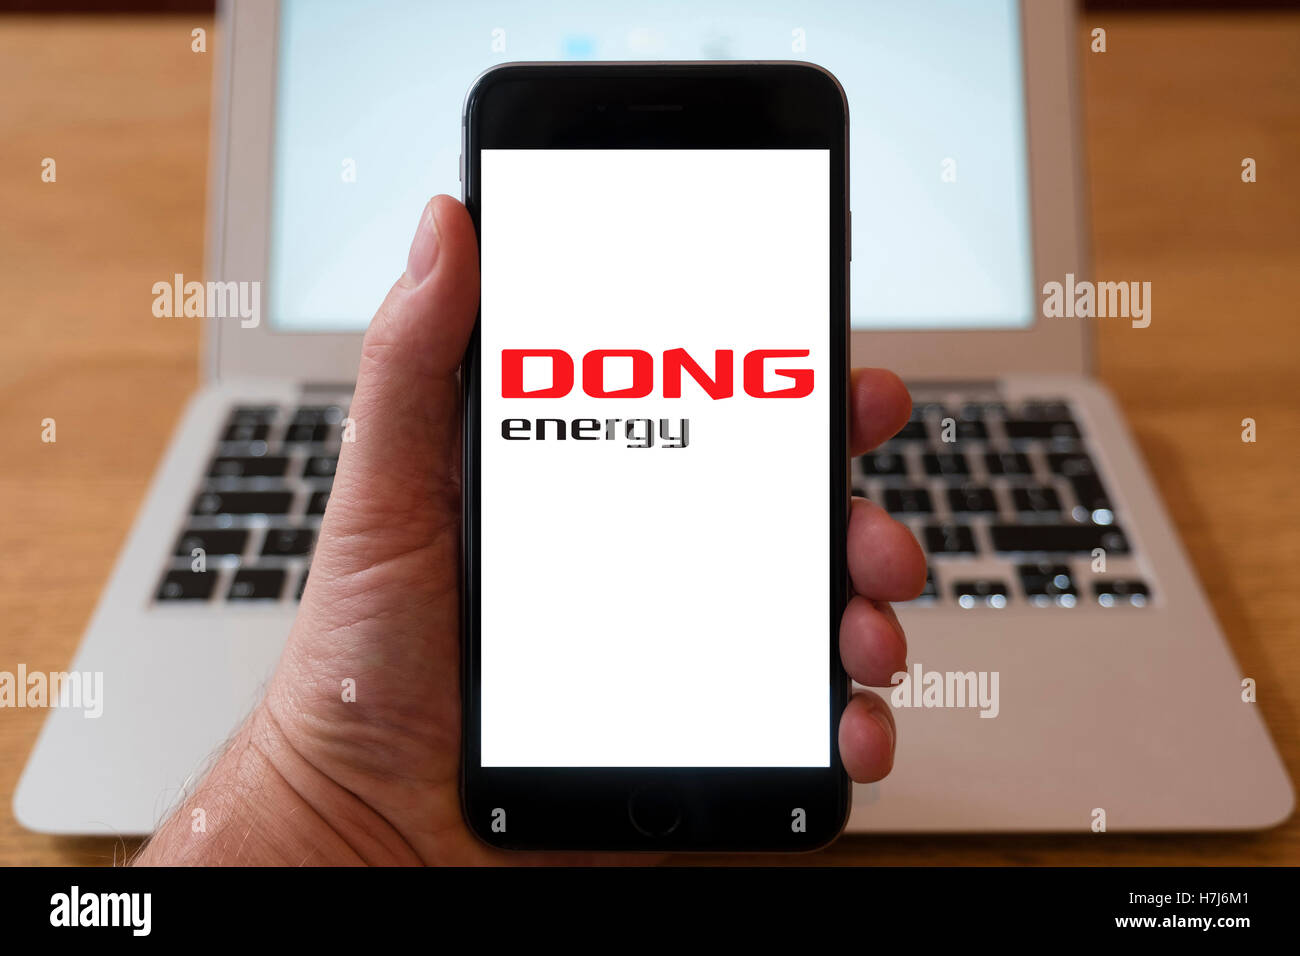 Using iPhone smart phone to display logo of Dong energy company - Stock Image